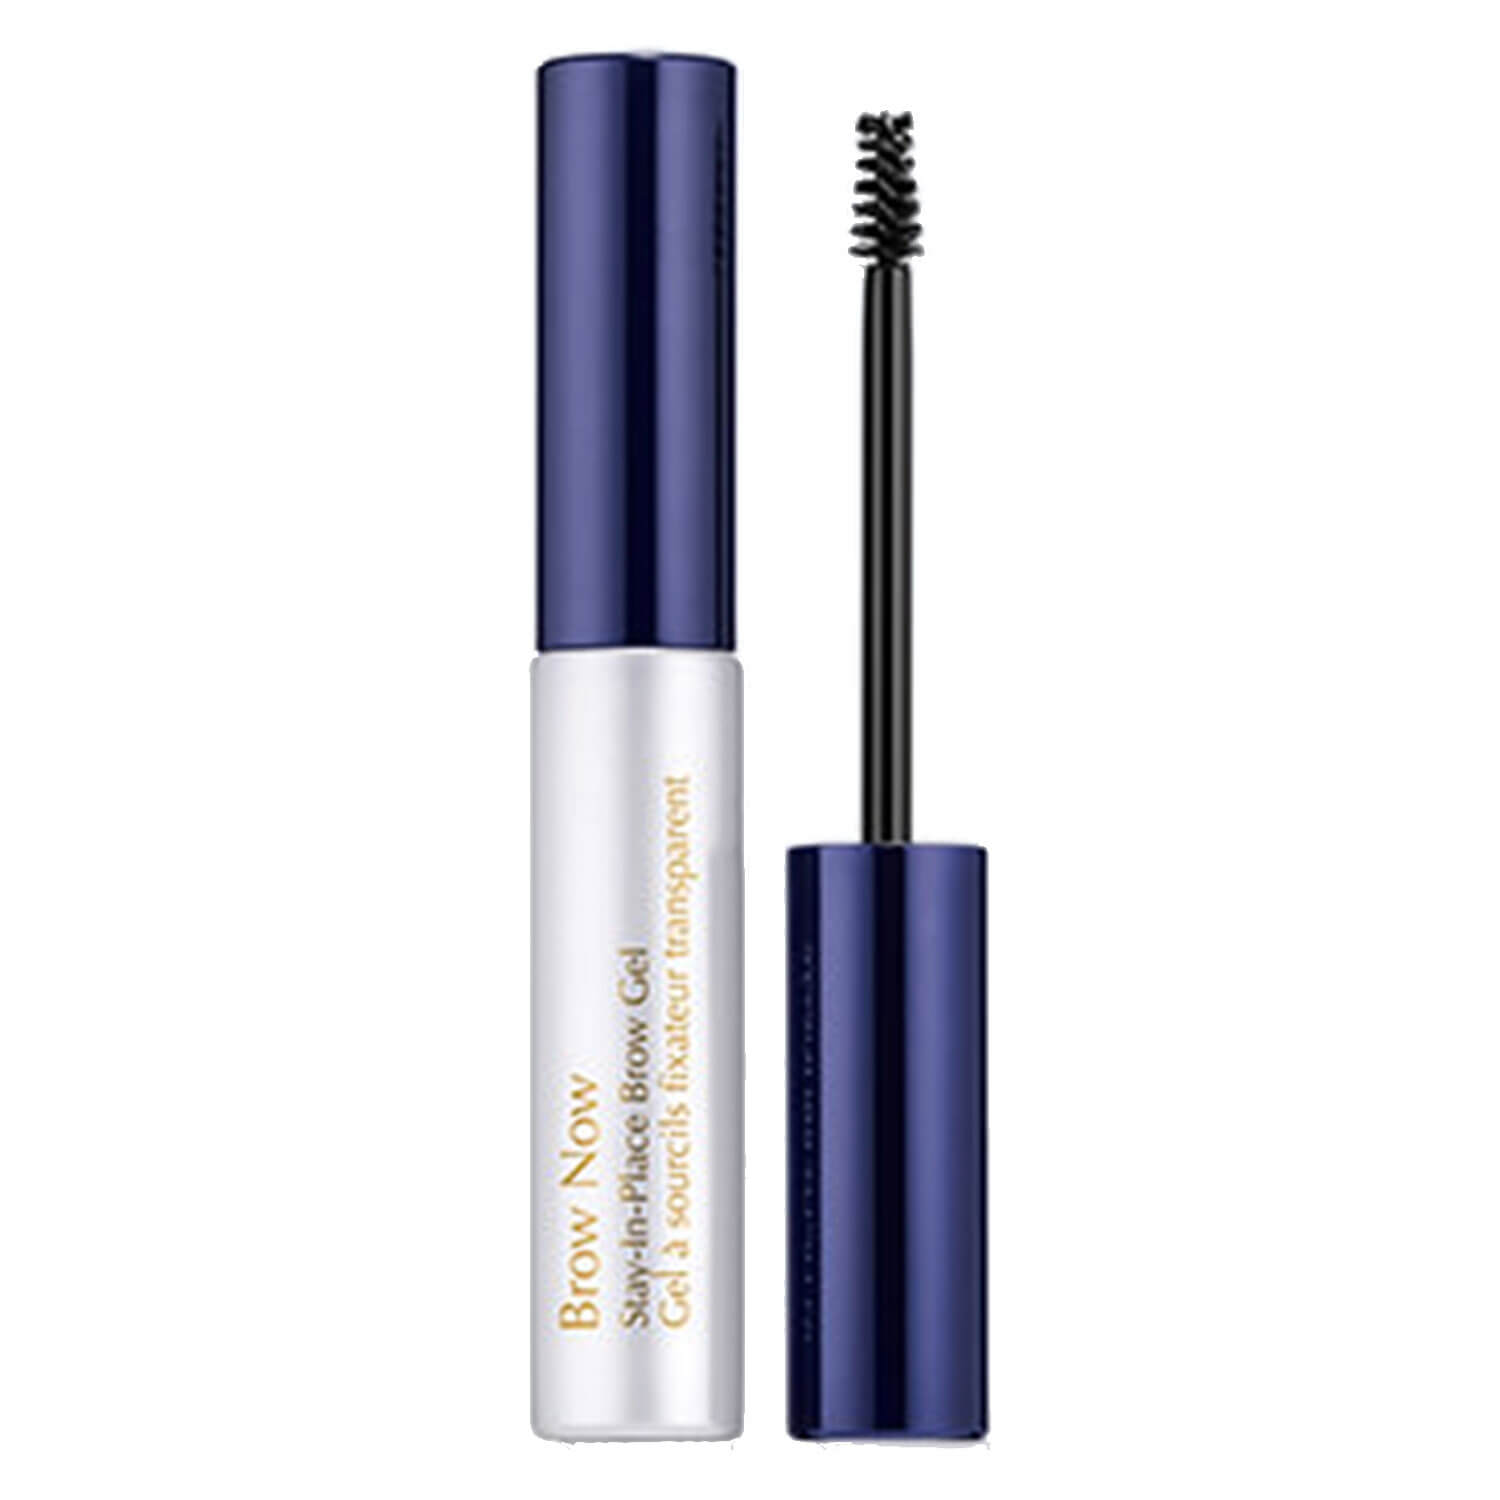 Brow Now - Stay-In-Place Brow Gel - 1.7ml